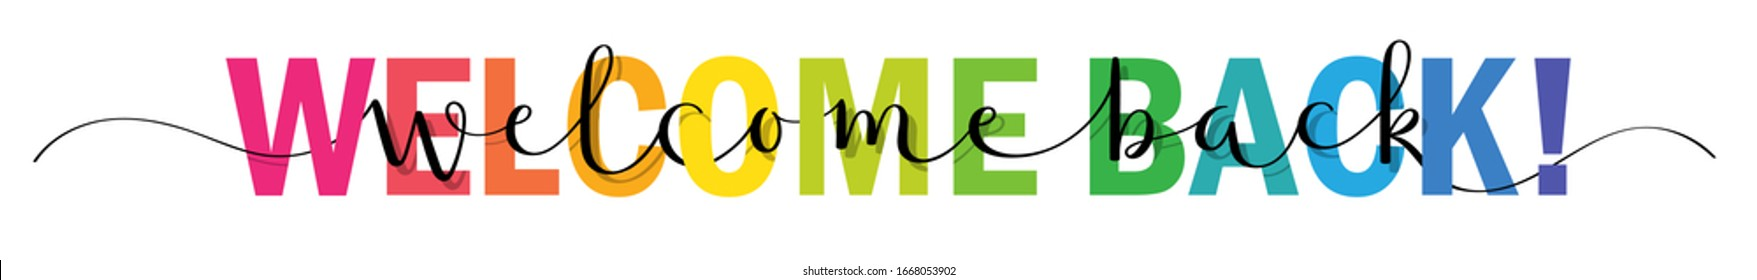 WELCOME BACK! mixed rainbow-colored vector typography banner with brush calligraphy